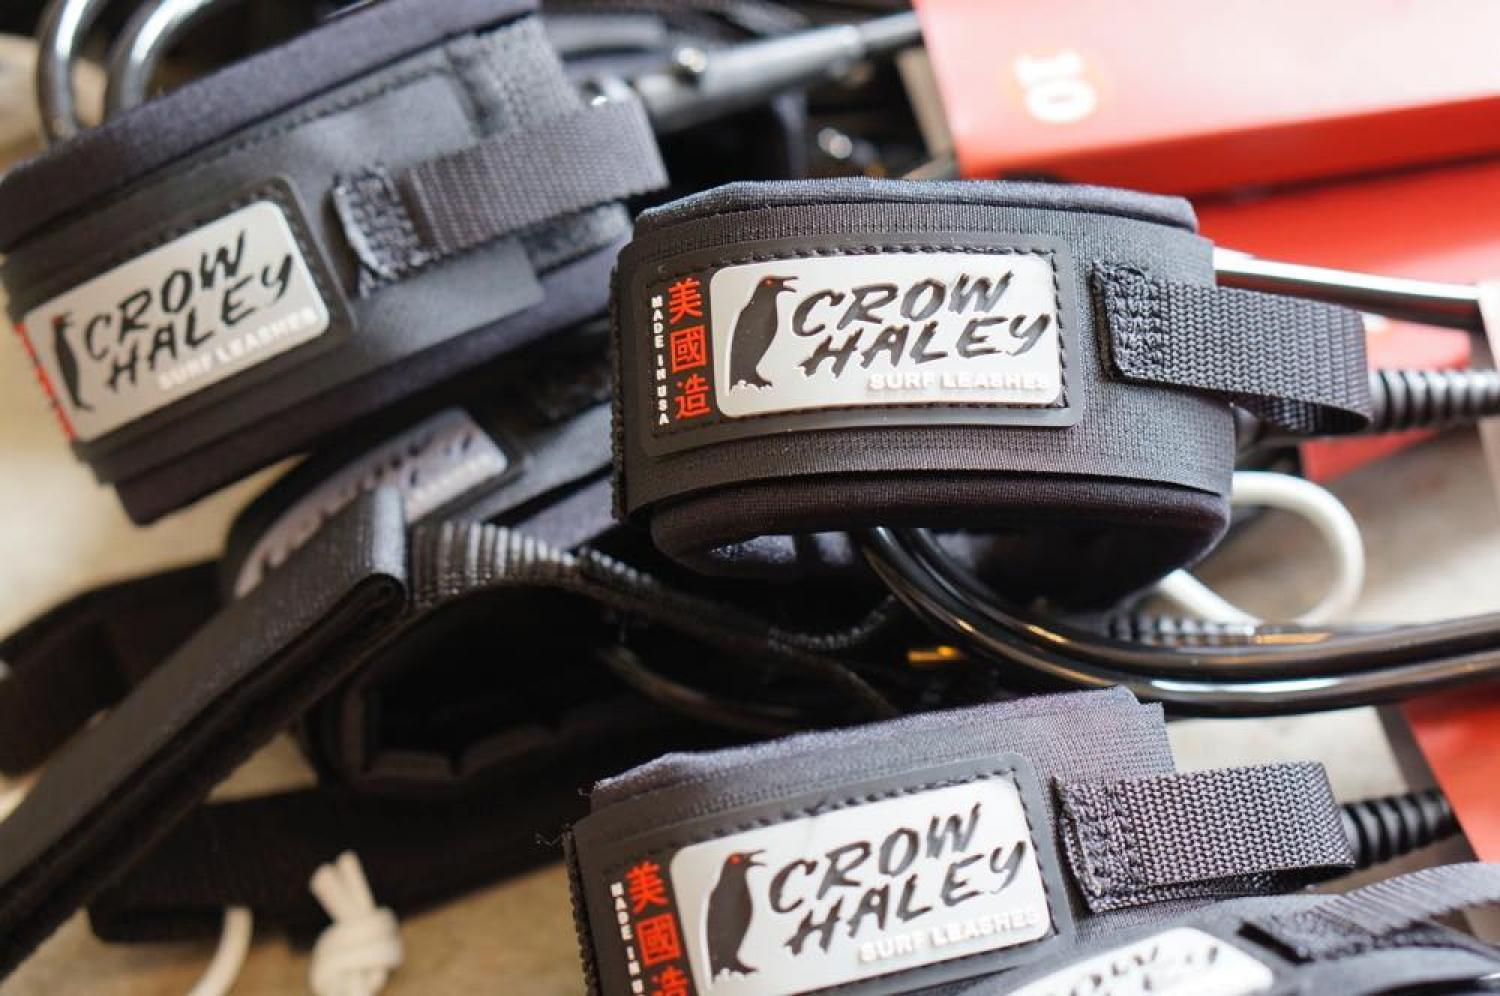 CROW HALEY Leash 再入荷!